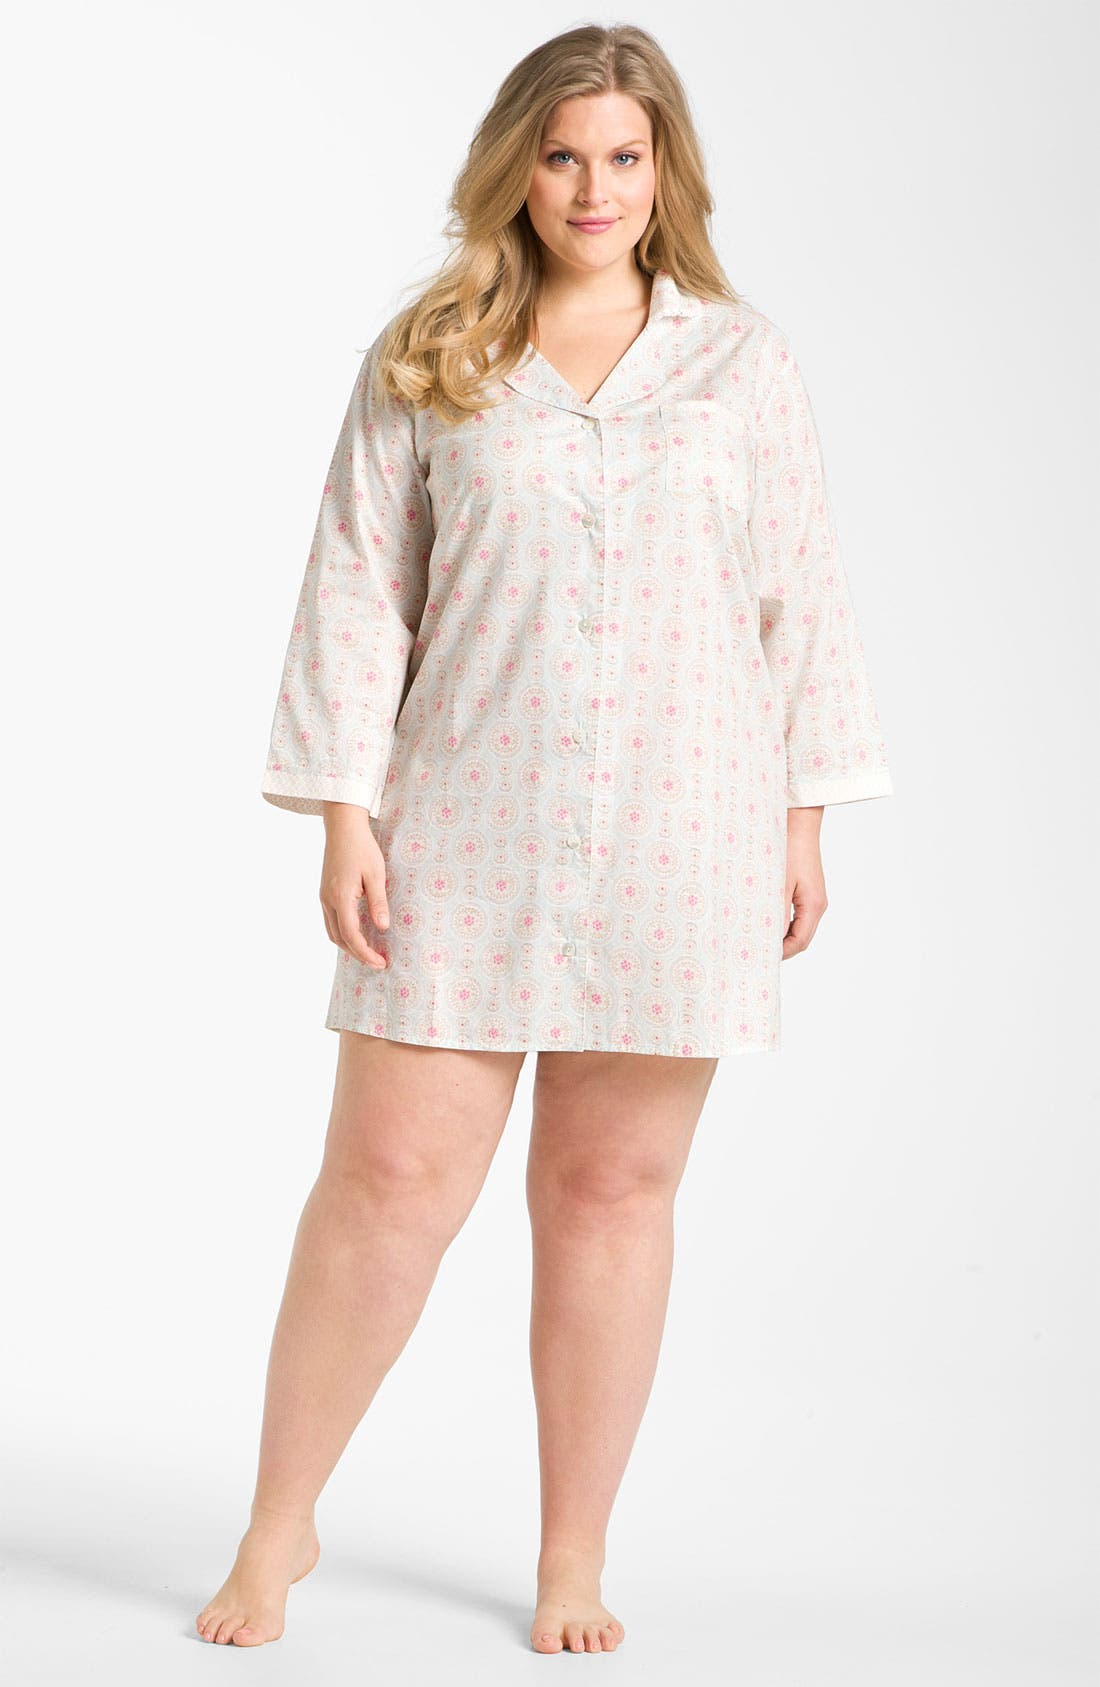 Alternate Image 1 Selected - Carole Hochman 'Wood Cut Floral' Nightshirt (Plus)